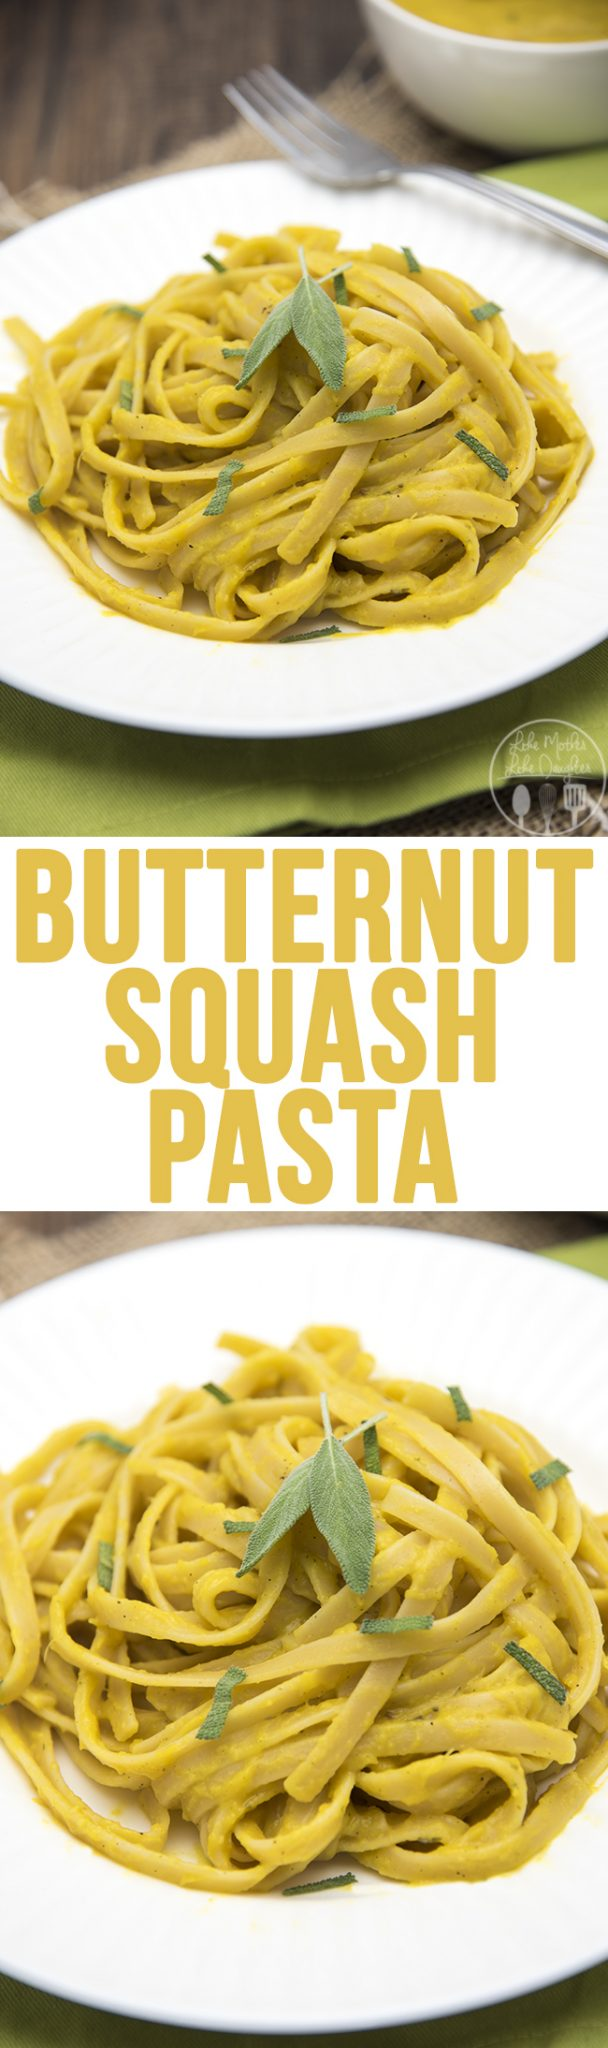 Butternut Squash Pasta - This creamy and flavor packed pasta has the perfect fall flavors packed into a tasty and vegan pasta dish that everyone will love. You won't even miss the meat!